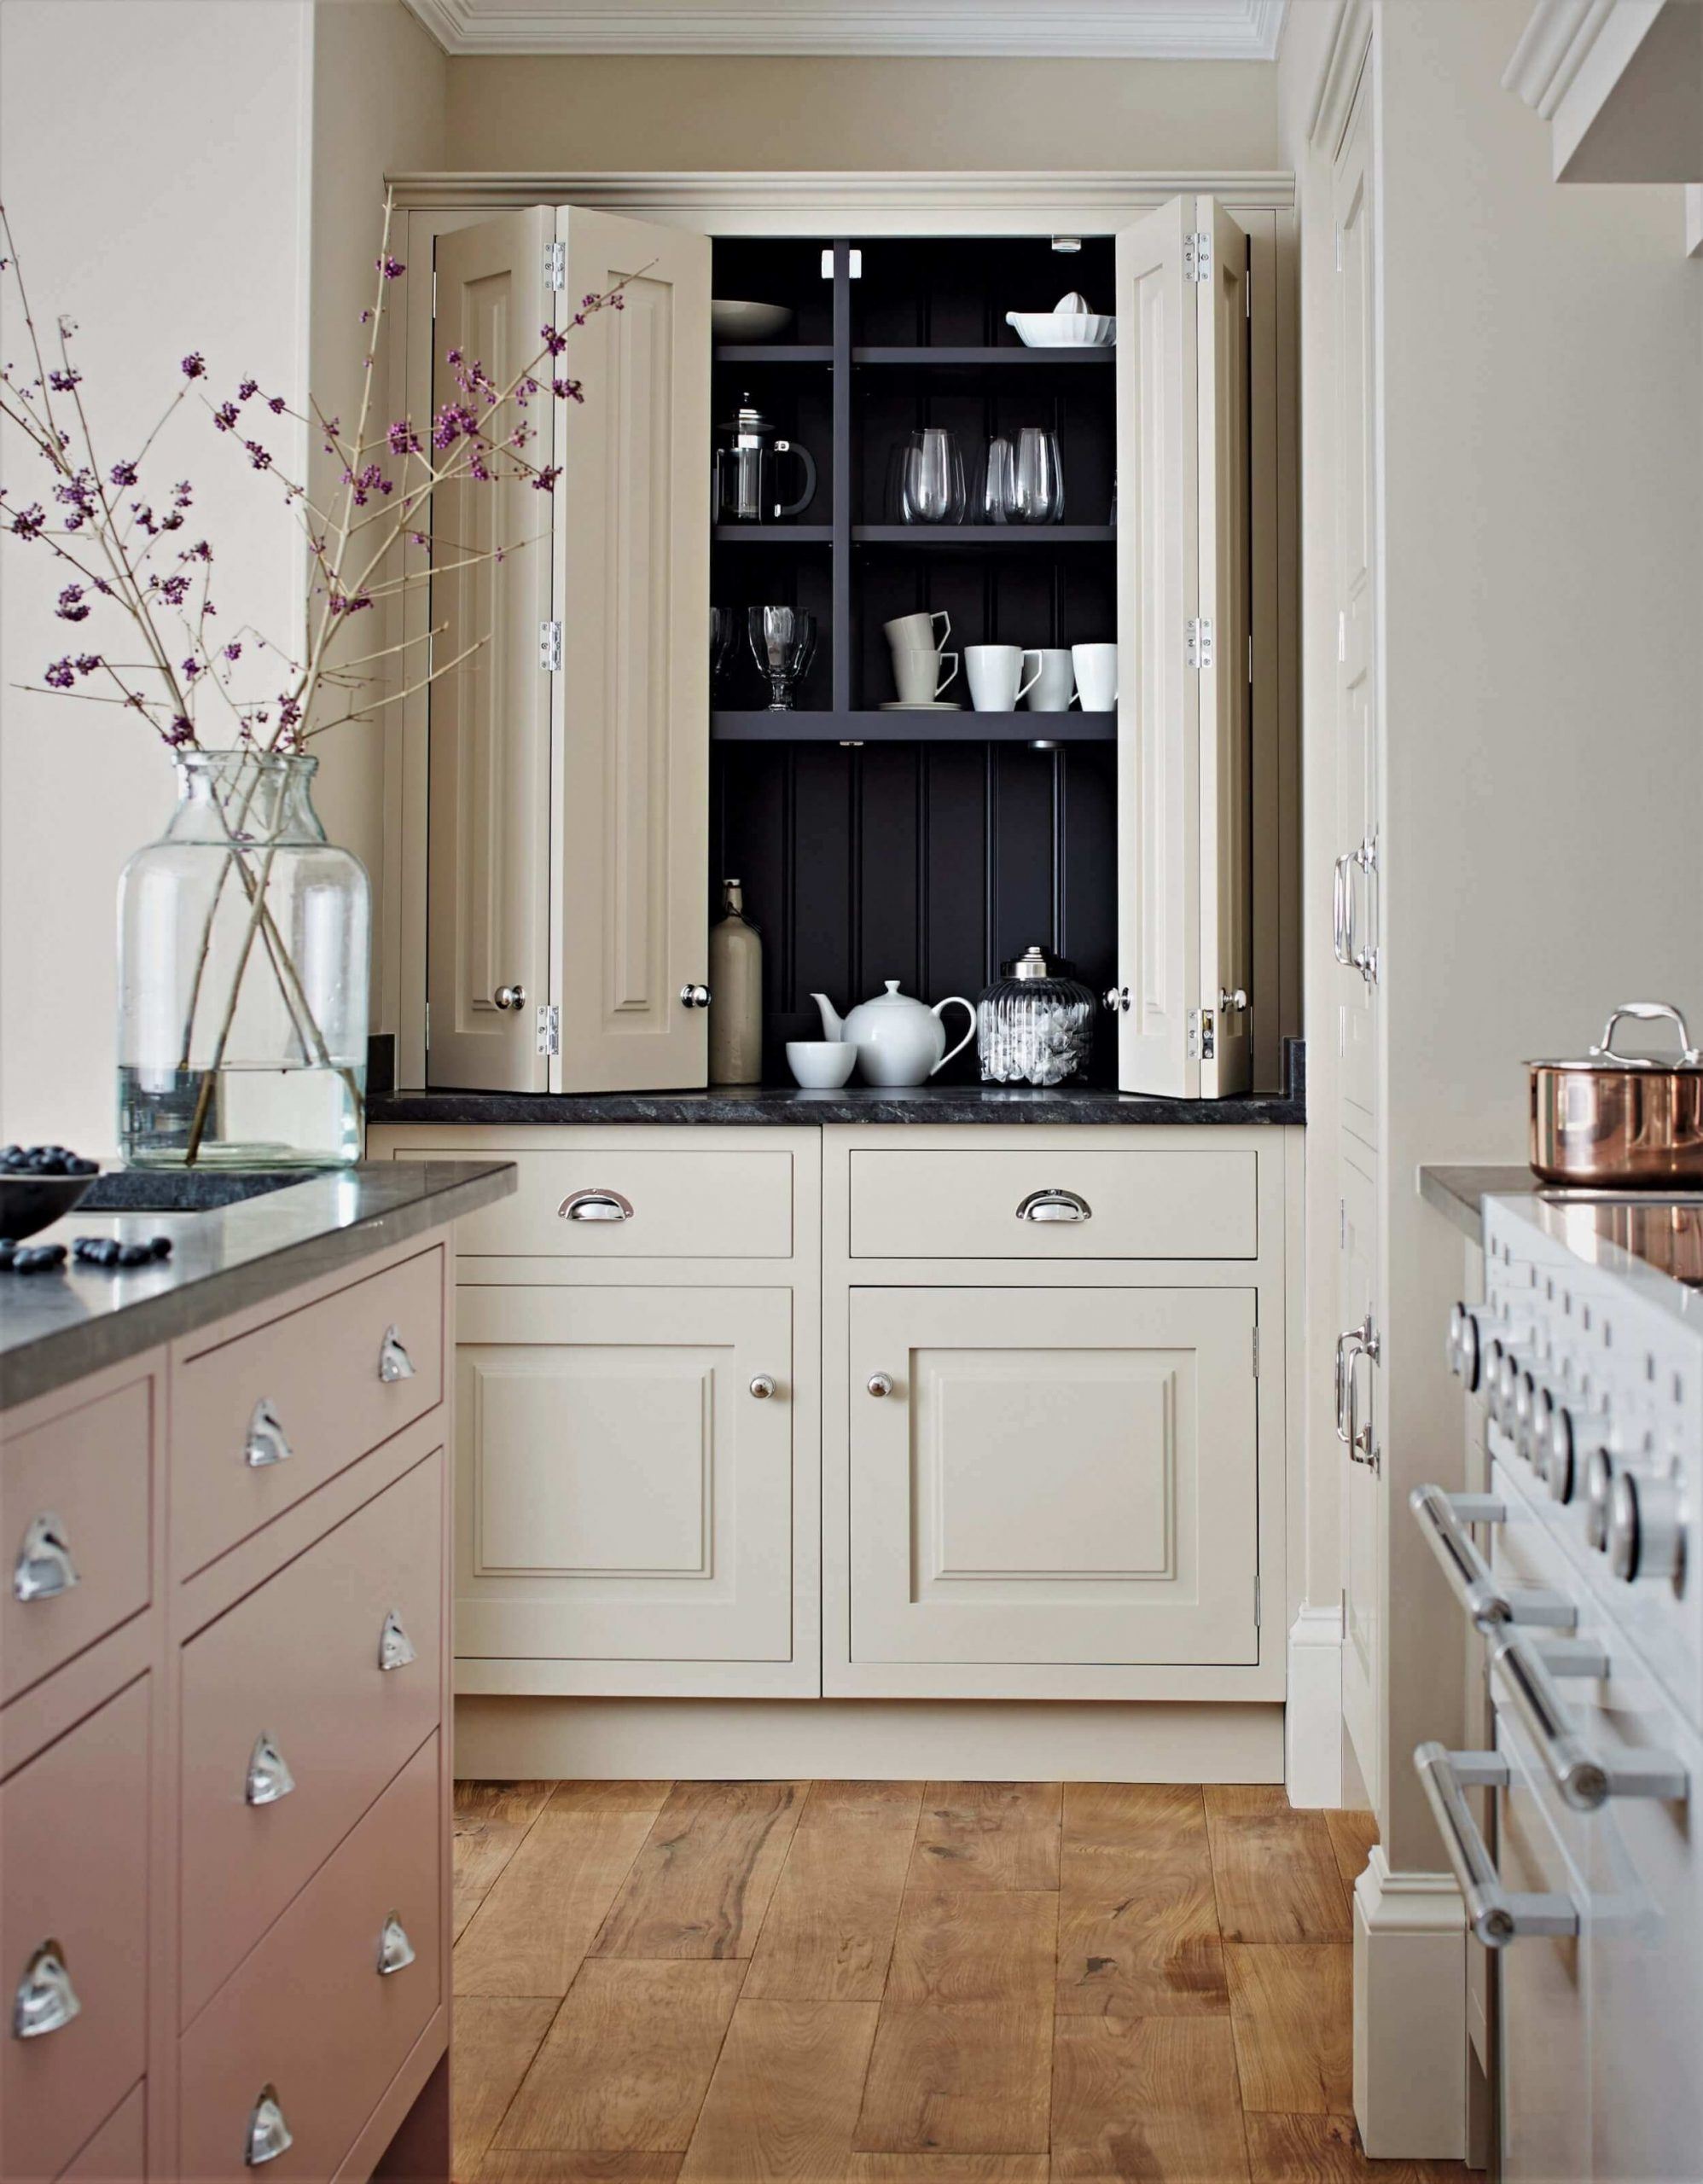 Bespoke Furniture Collection  John Lewis of Hungerford - Free Standing Kitchen Cabinets John Lewis